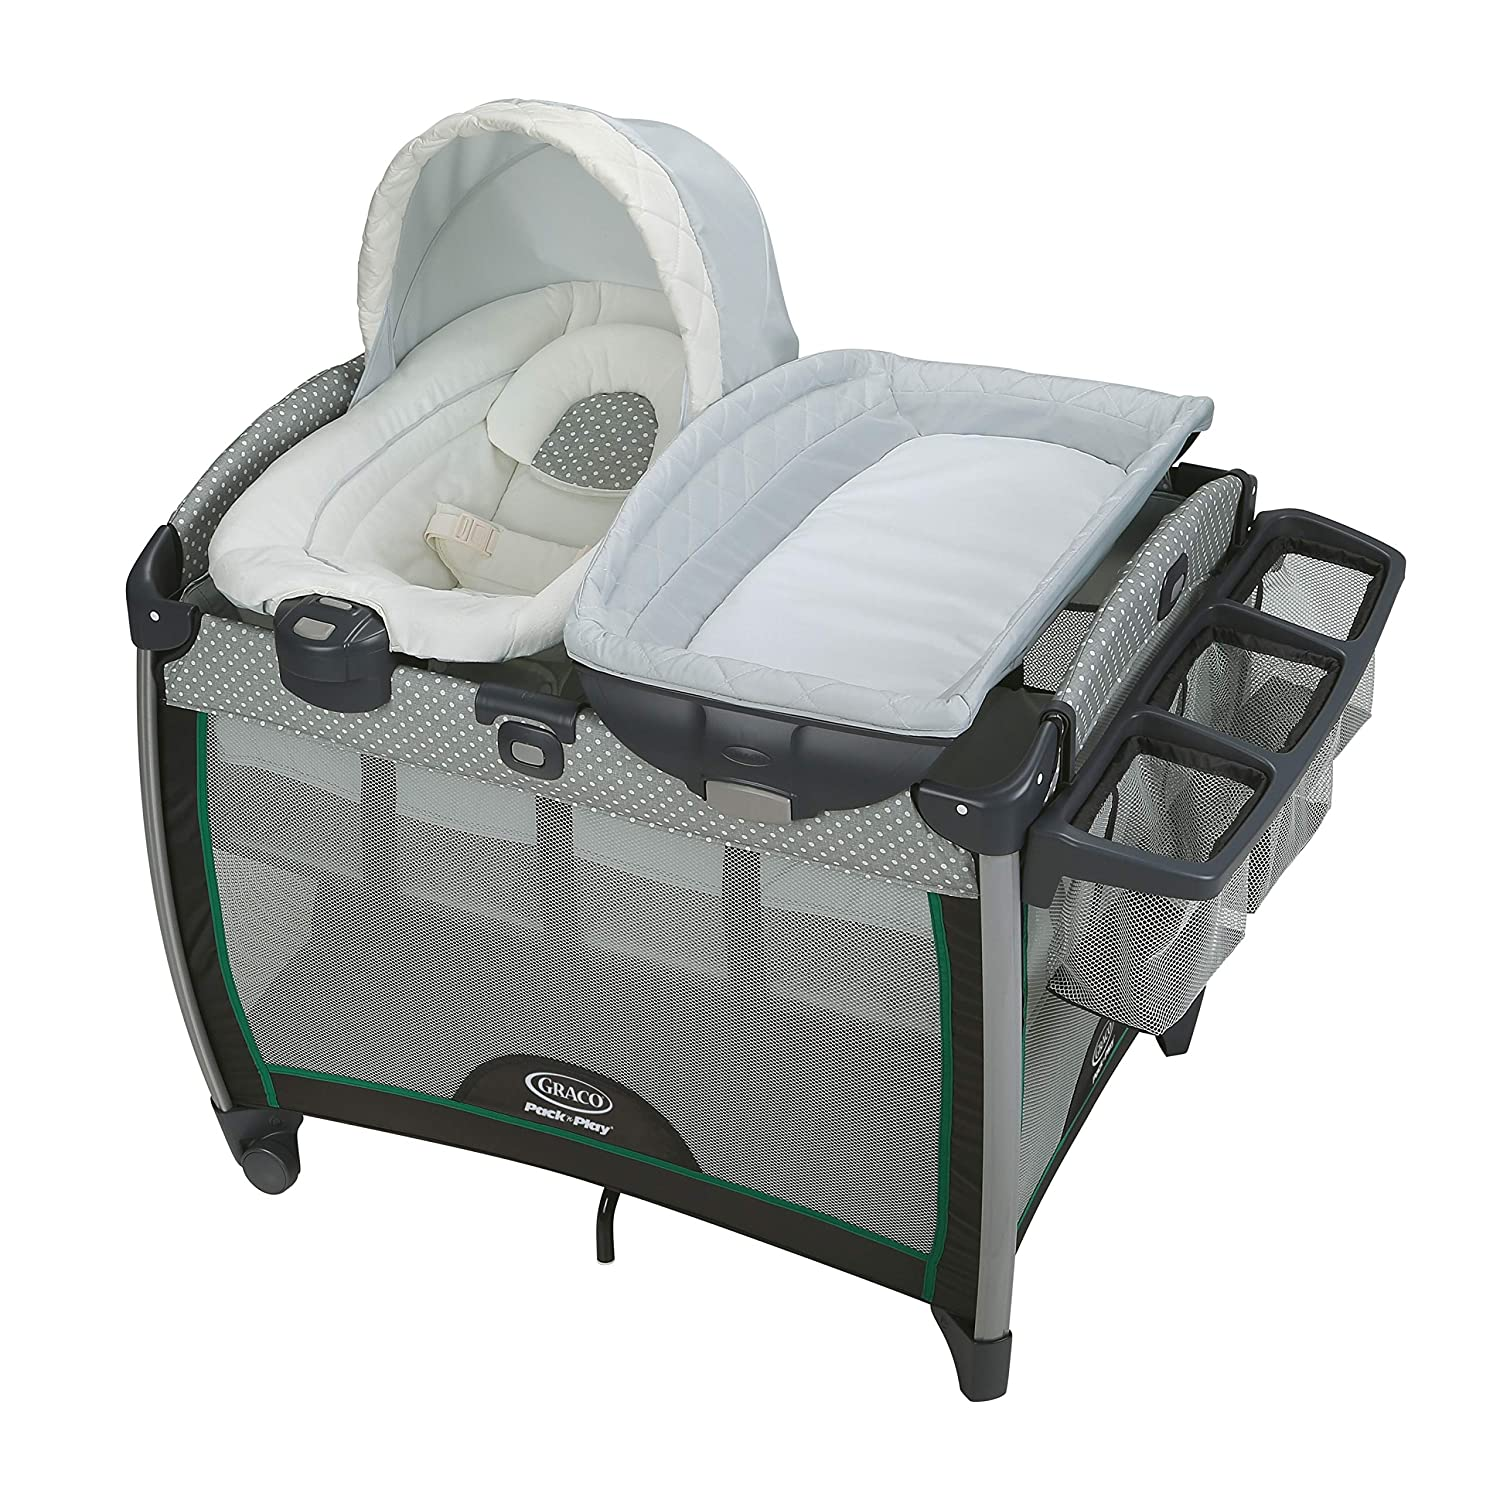 870e9b68e010 Amazon.com   Graco Pack  n Play Quick Connect Portable Bouncer with Bassinet